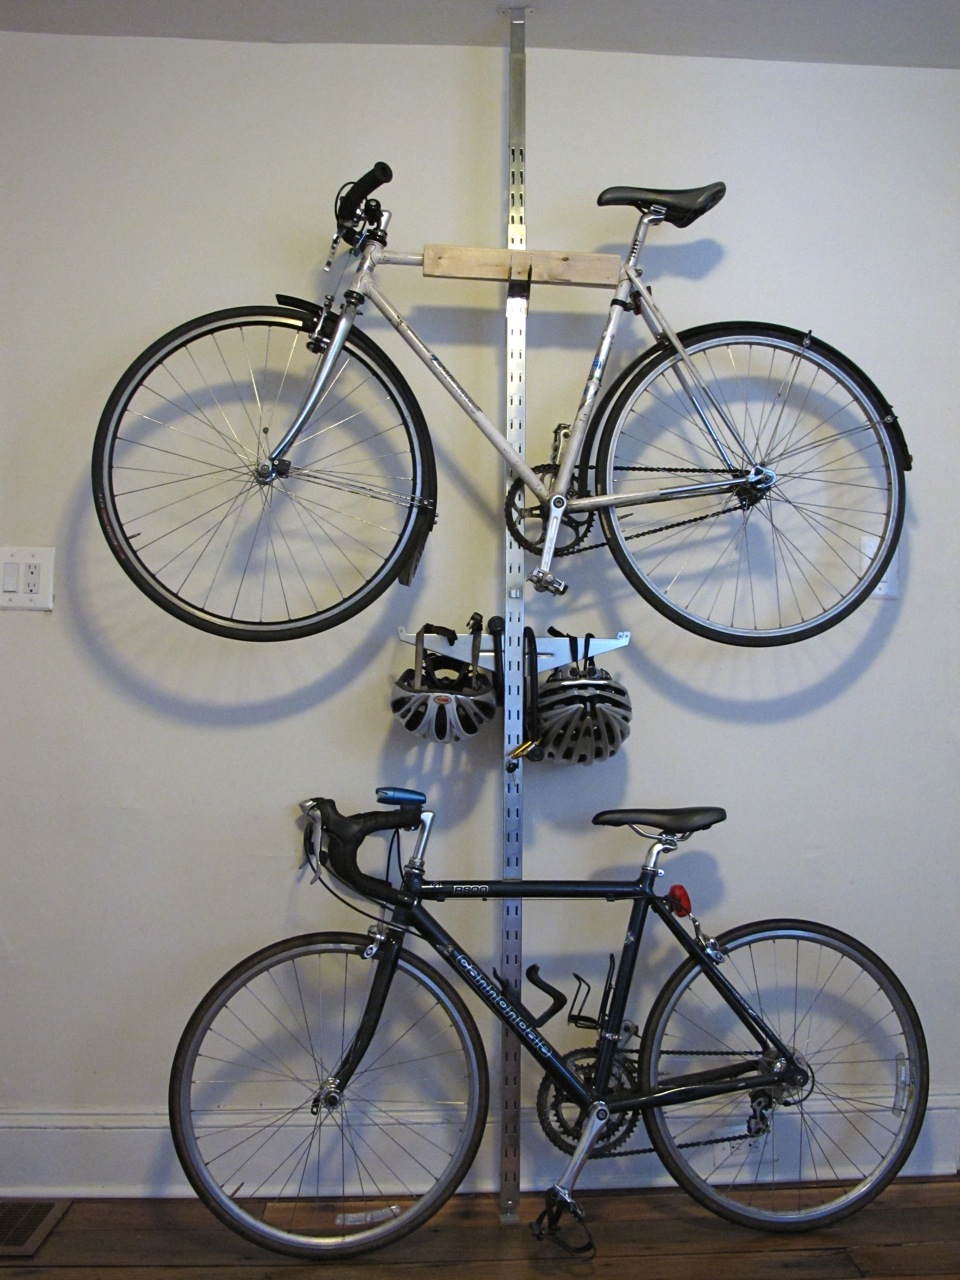 IKEA Hack: DIY Bike Storage | Man Made DIY | Crafts for